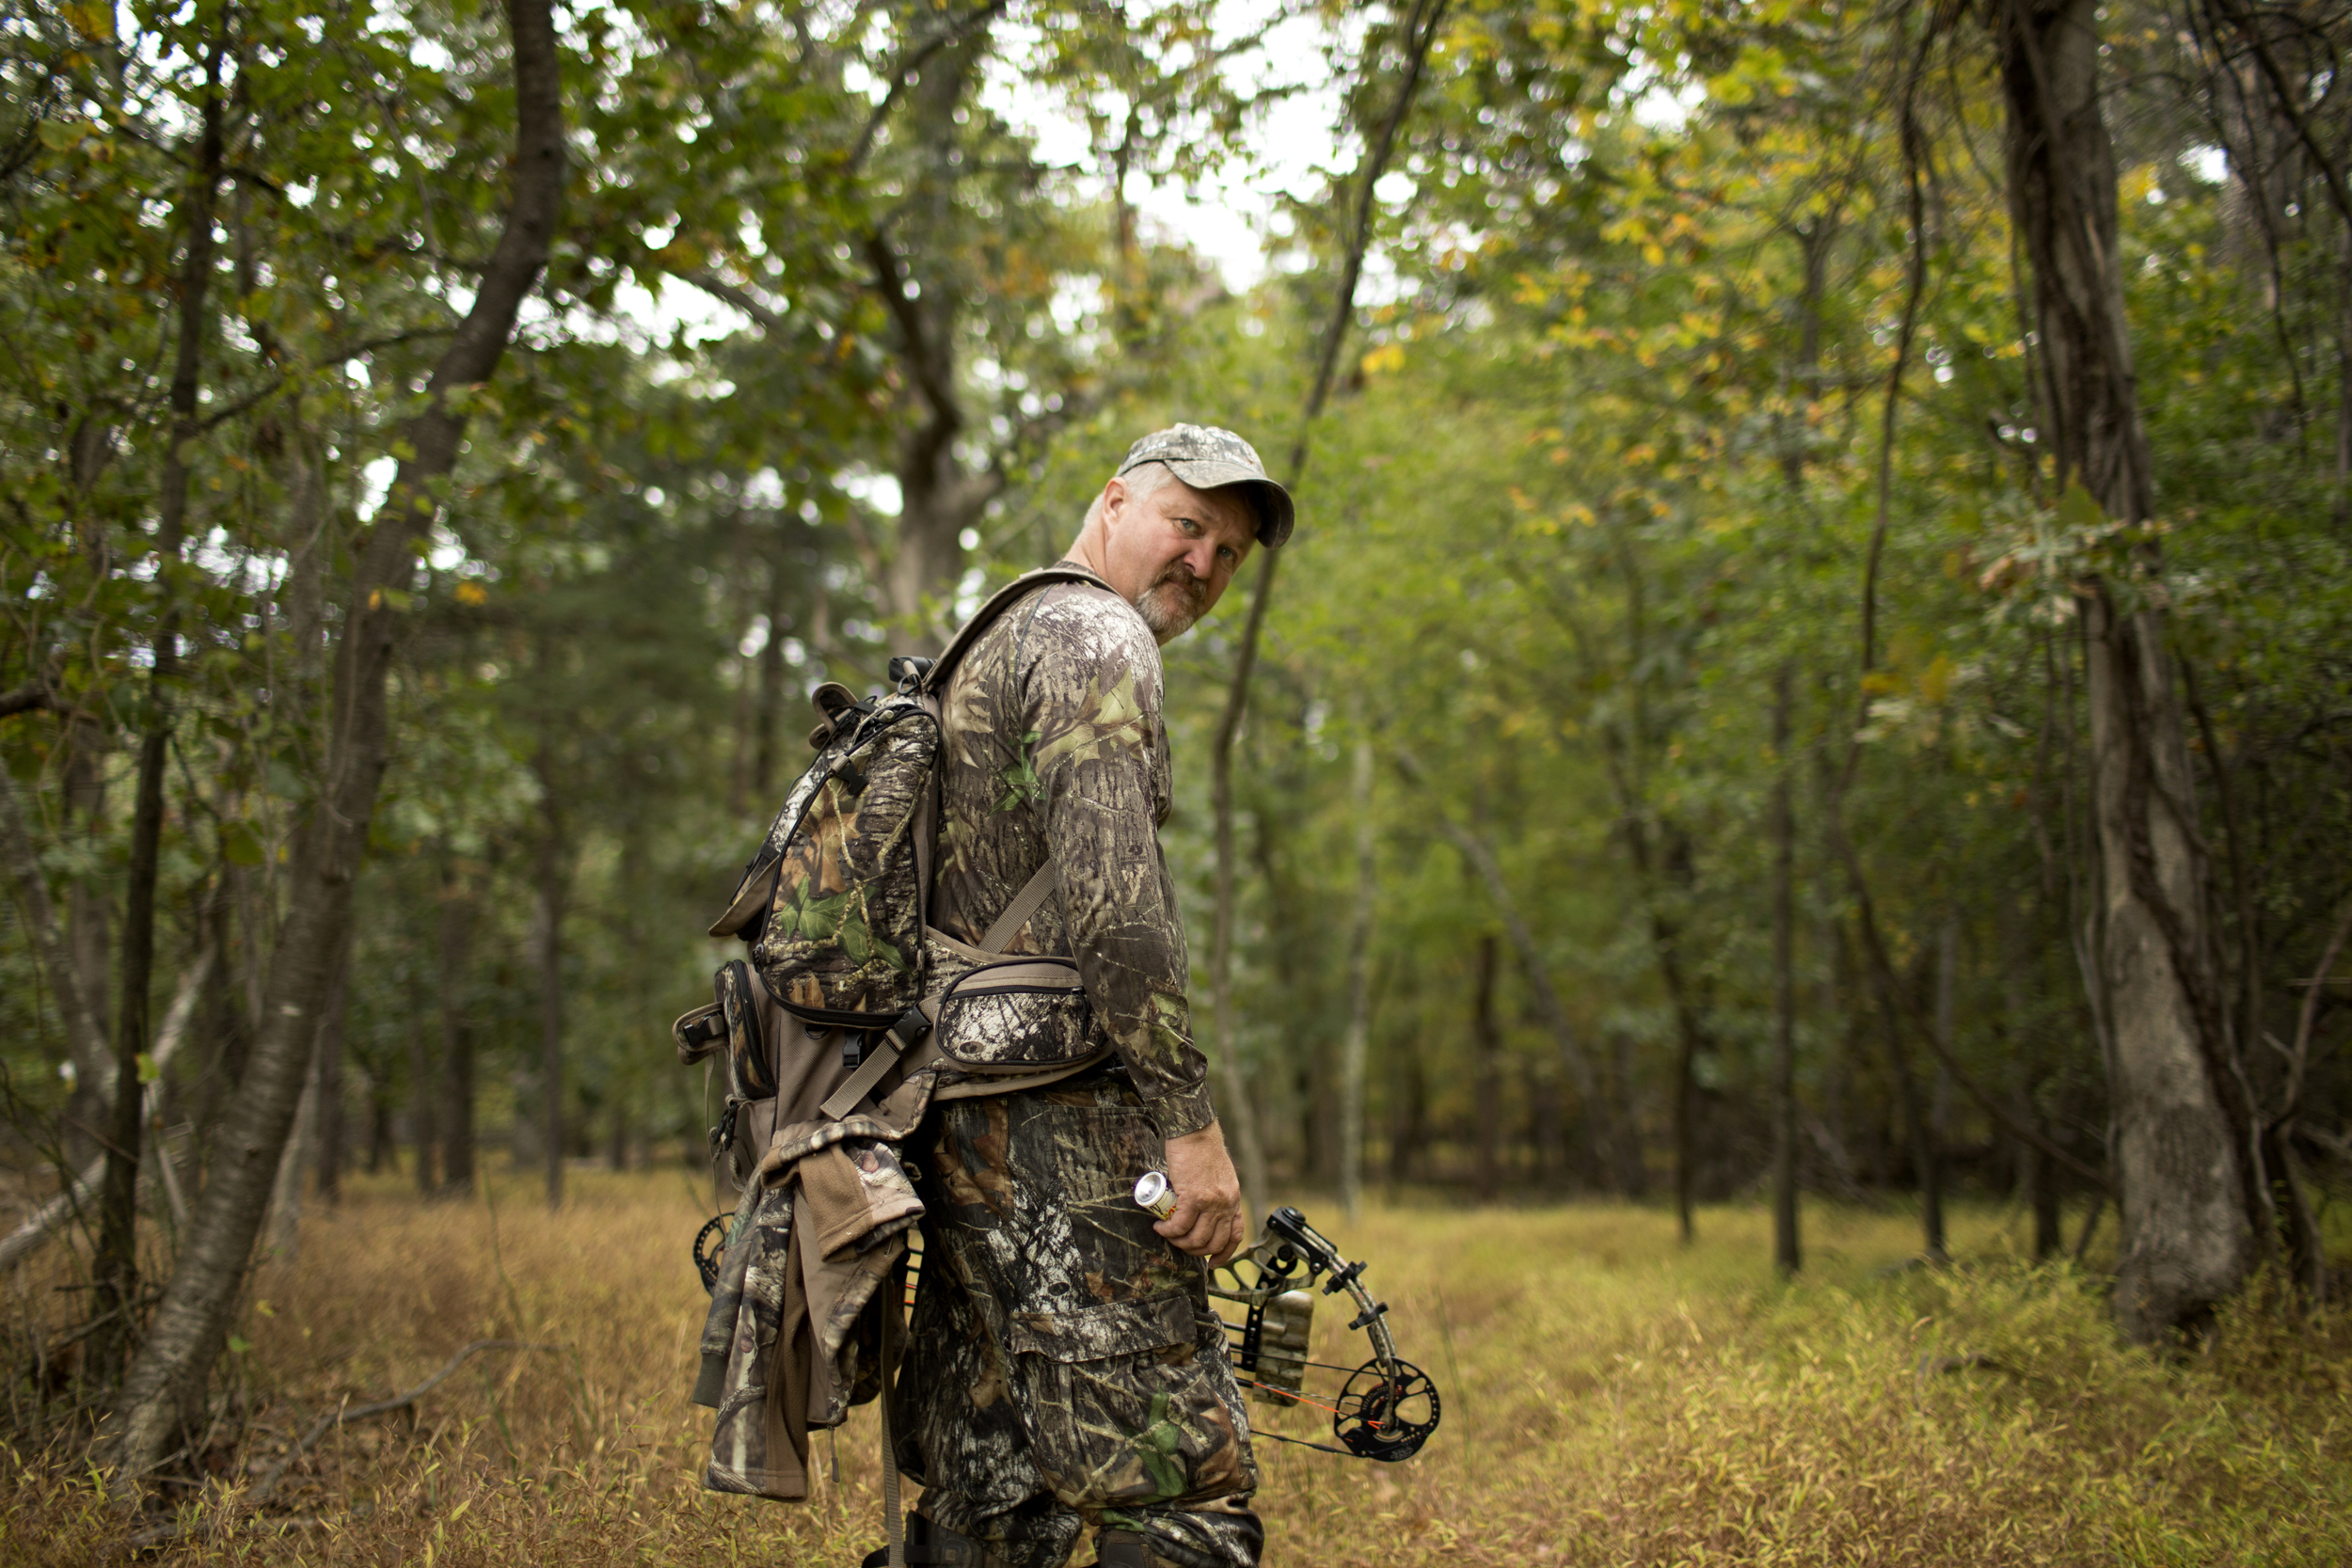 Tracy Groves stands on the edge of a forest on his way to a tree stand during his first hunt of the 2015 Maryland deer season.